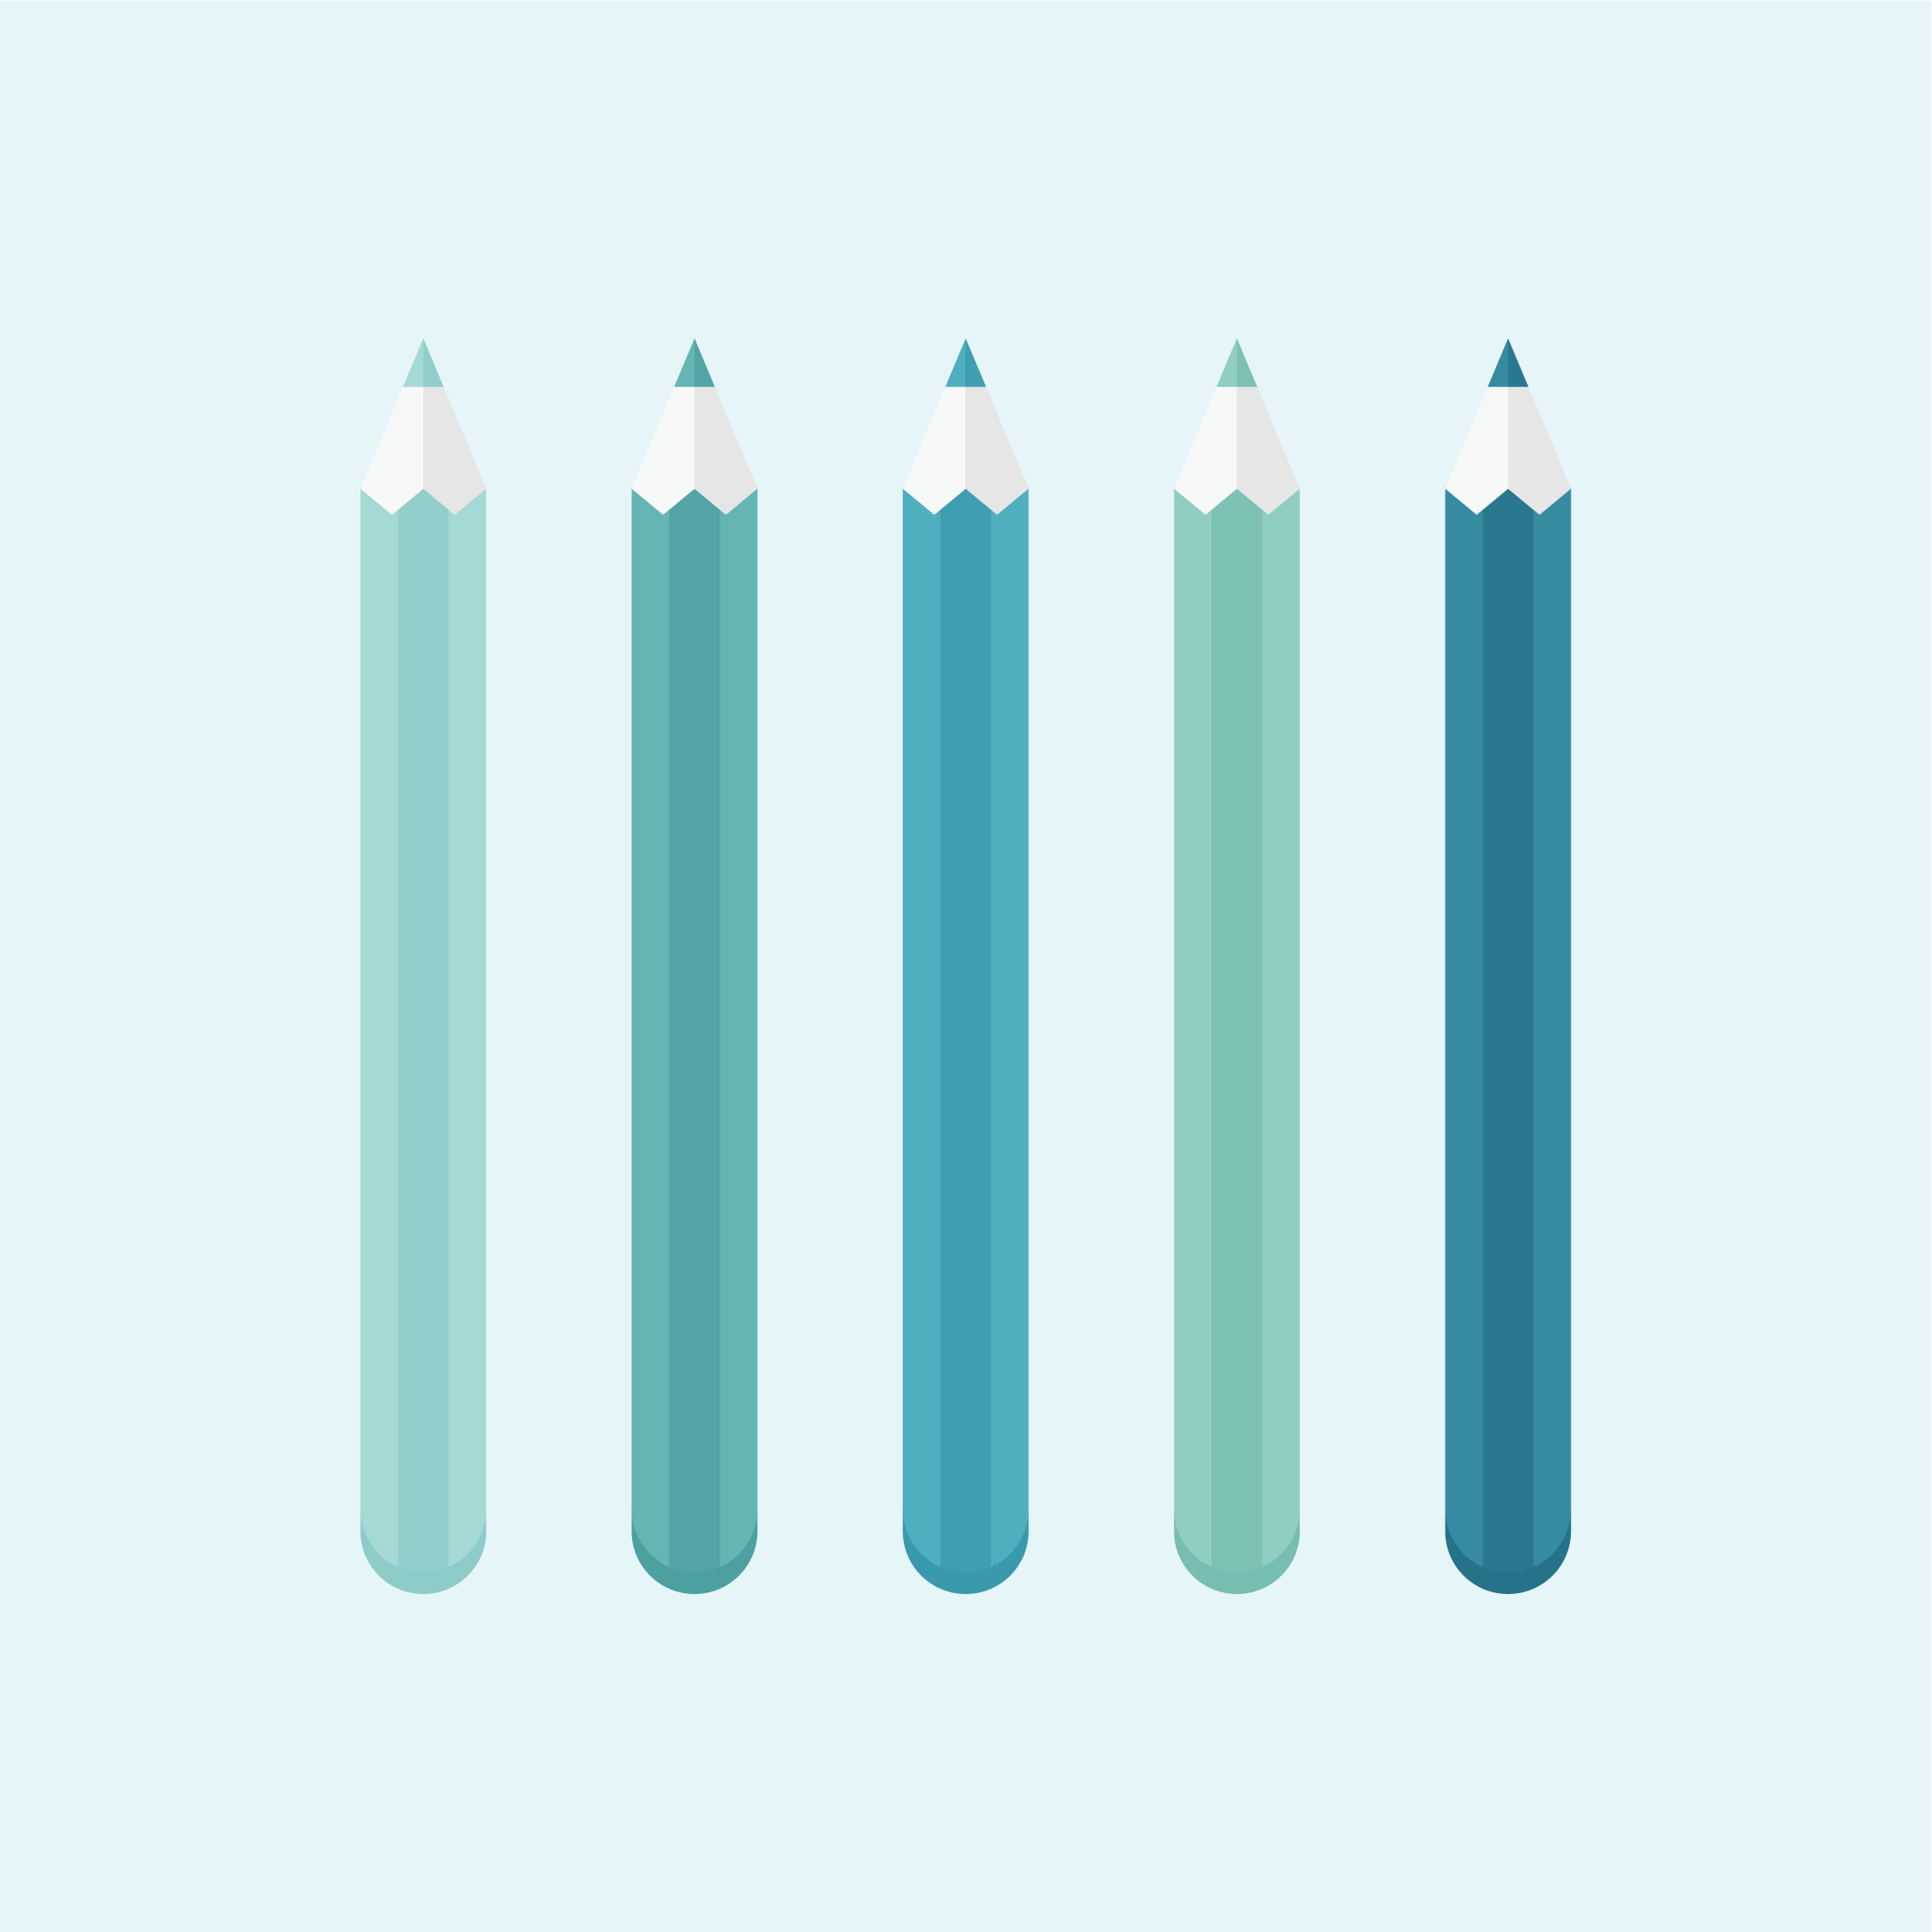 Monochromatic vector illustration of five colouring pencils in different shades of green in flat design style